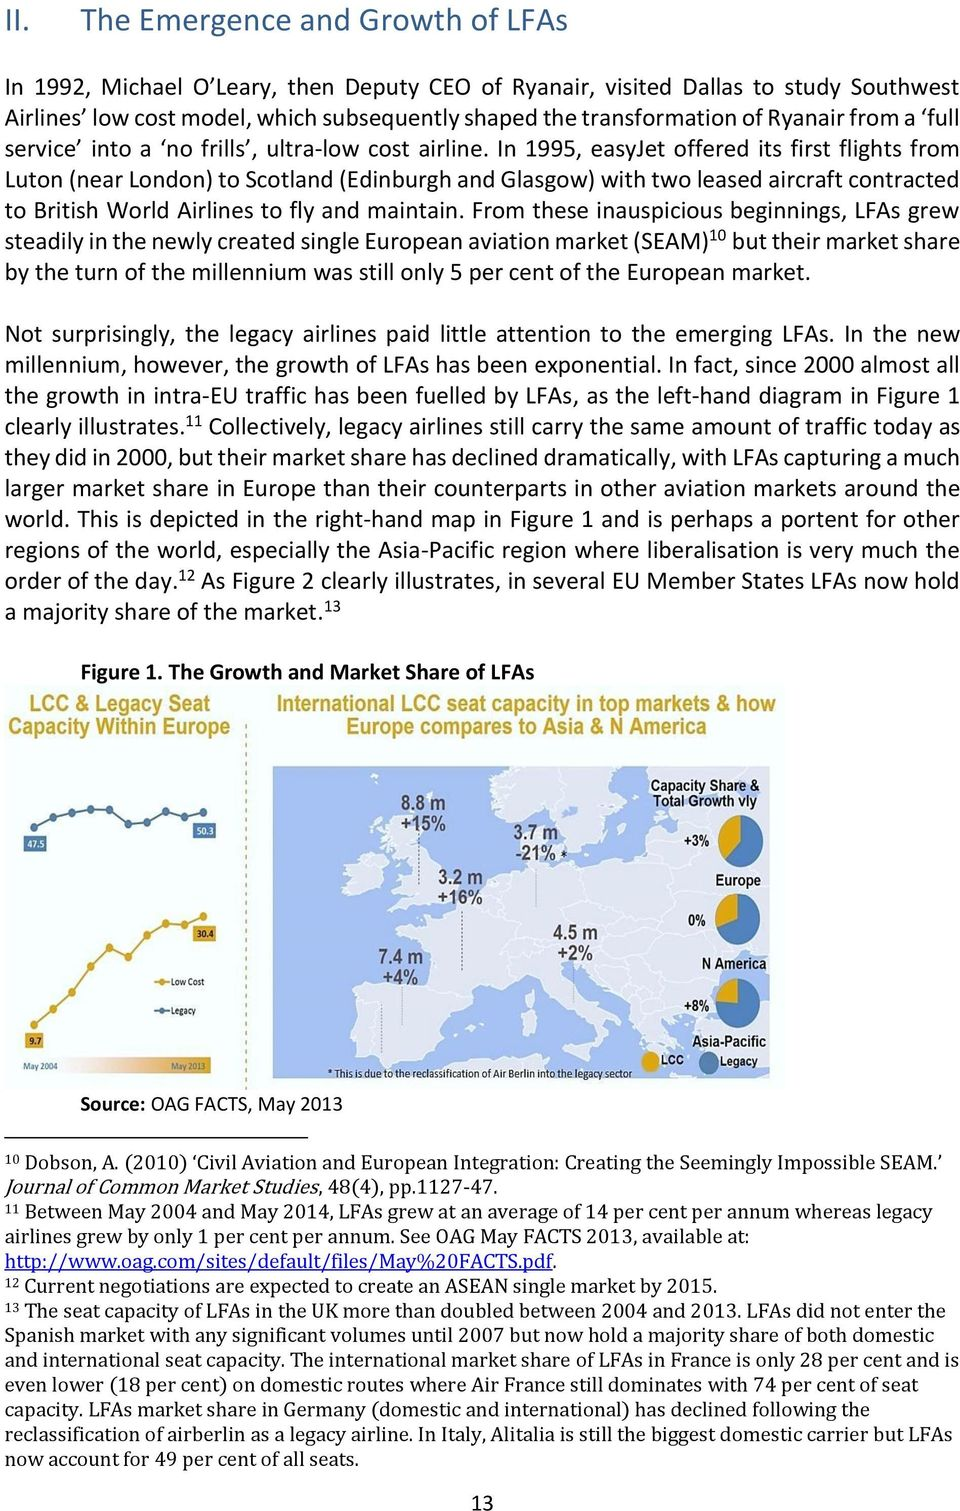 iberia case study Use this ib diploma business management case study to help your students connect business applications with real organizations and scenarios.